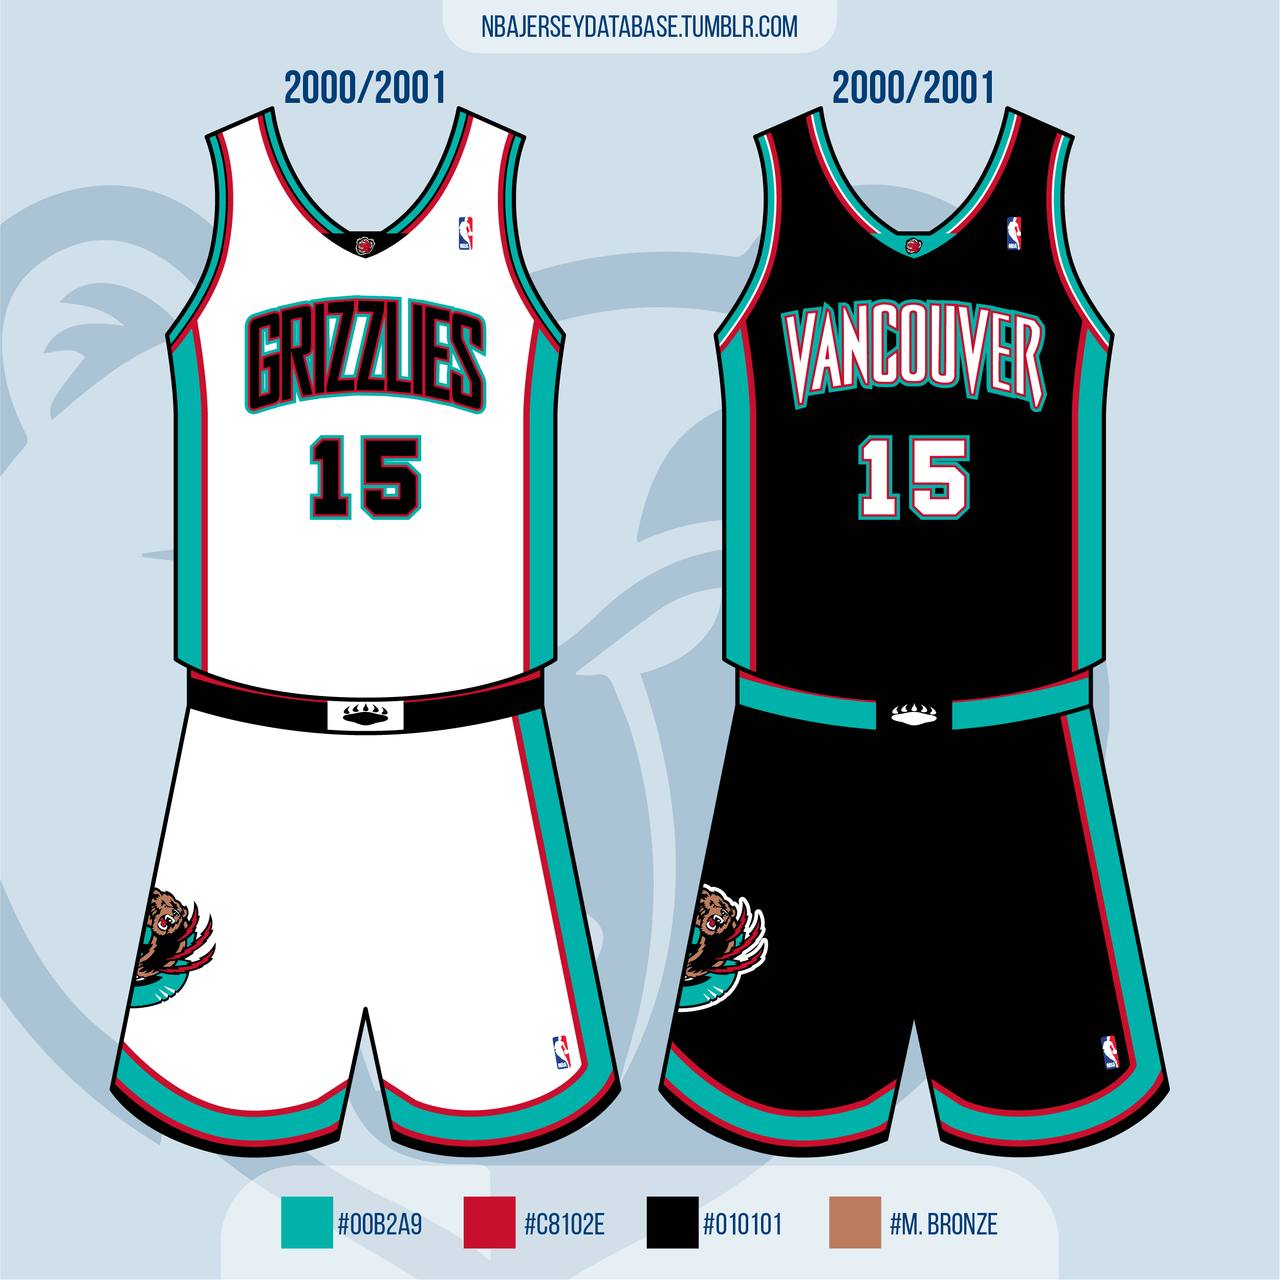 Vancouver Grizzlies 2000-2001 Record: 23-59 (28%)